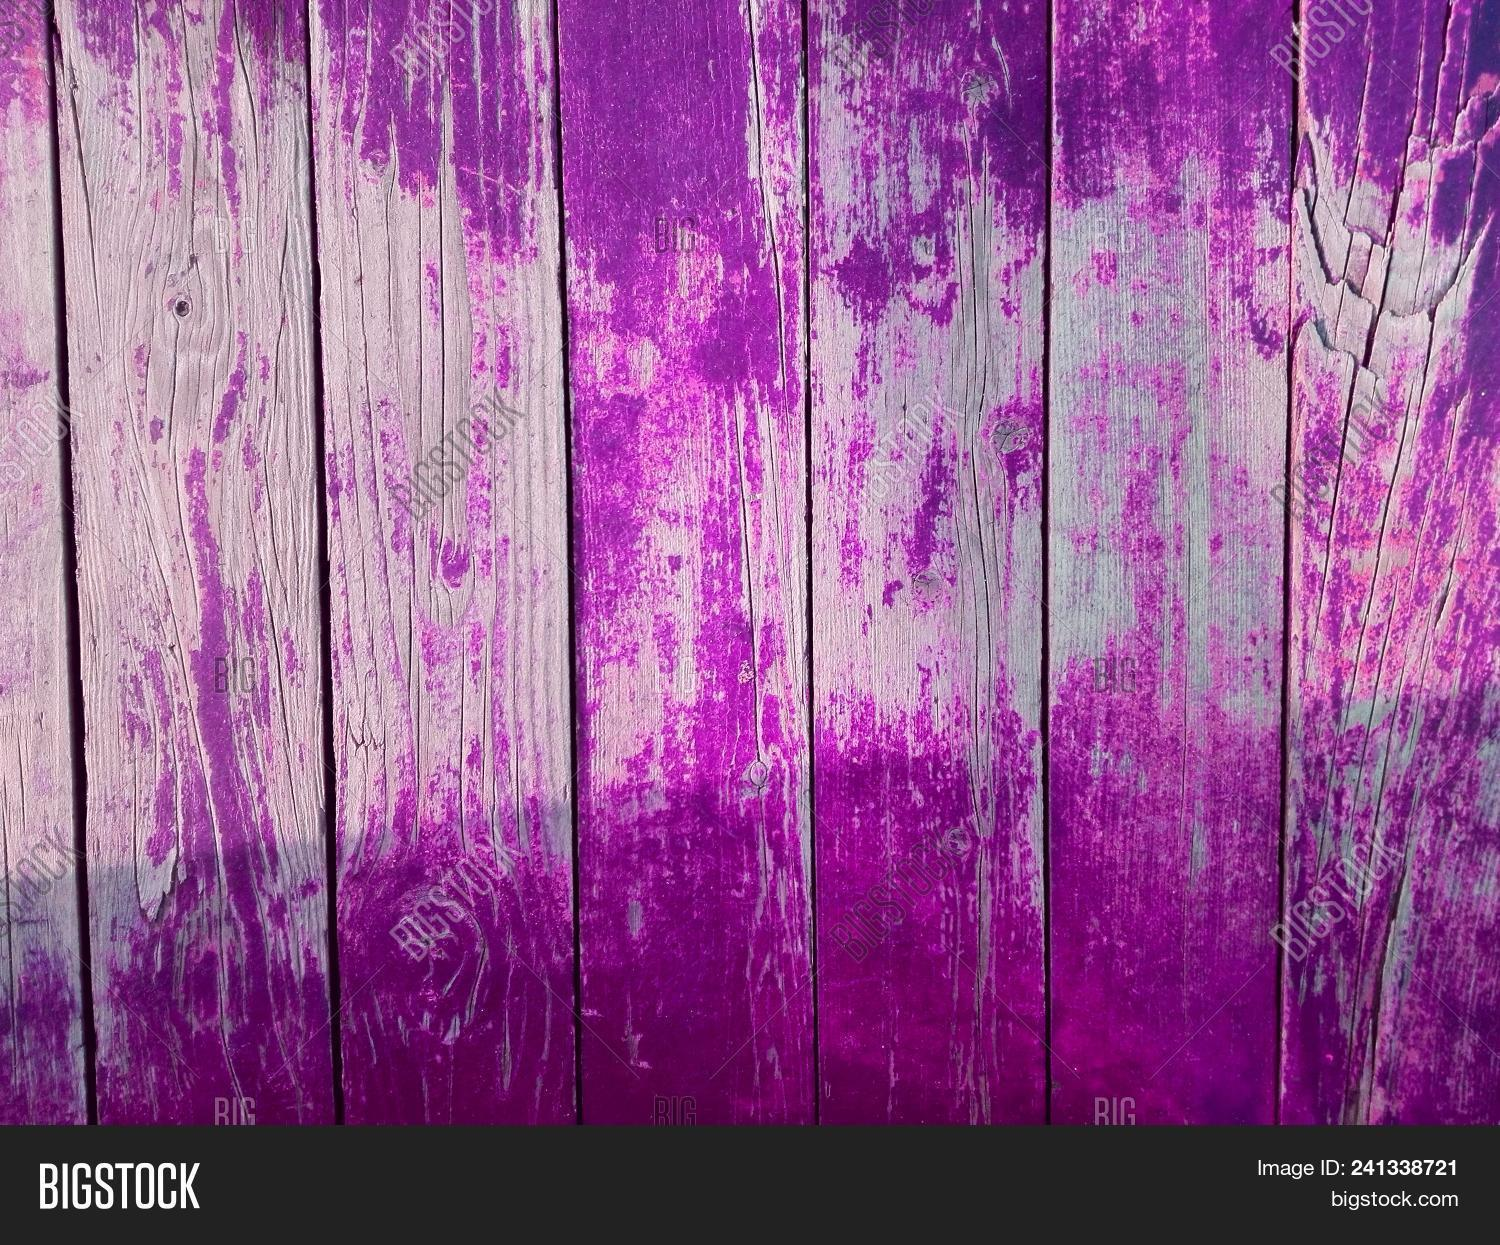 Close Up Wall Or Floor Wooden Purple Plank Panel Board As Pink Background For Text Old Wood Vintage Paint